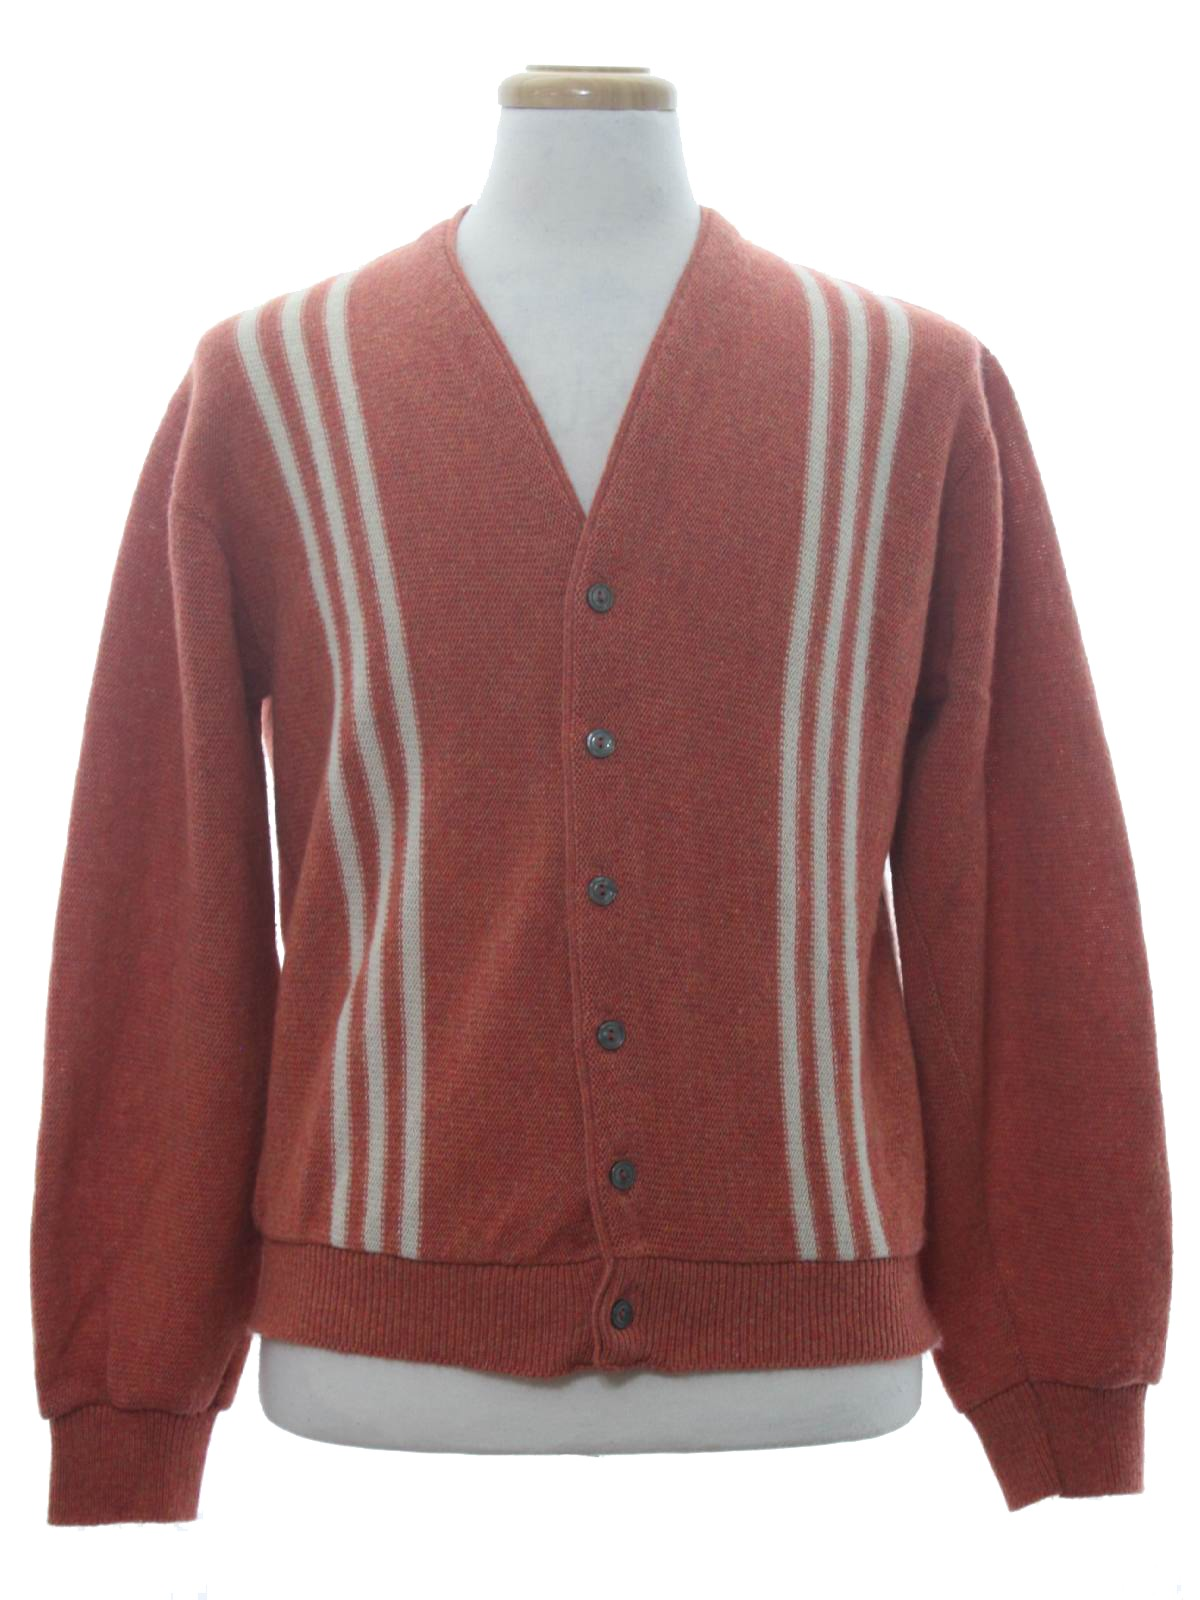 1960s Jacquard Knit Acrylic Cardigan Sweater by Sears Roebuck and Co